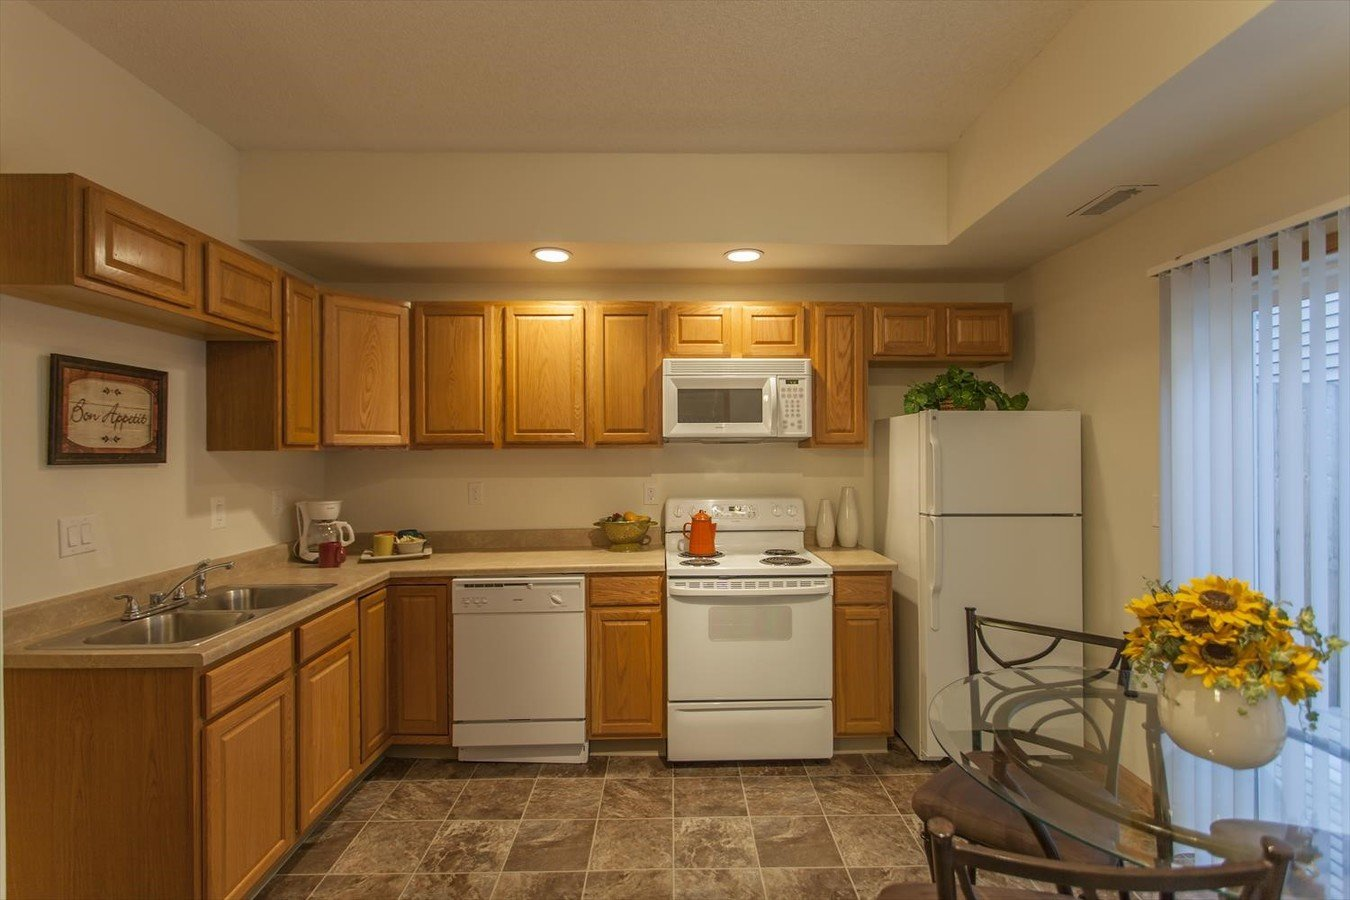 1 Bedroom 1 Bathroom Apartment for rent at Woodland West in West Des Moines, IA